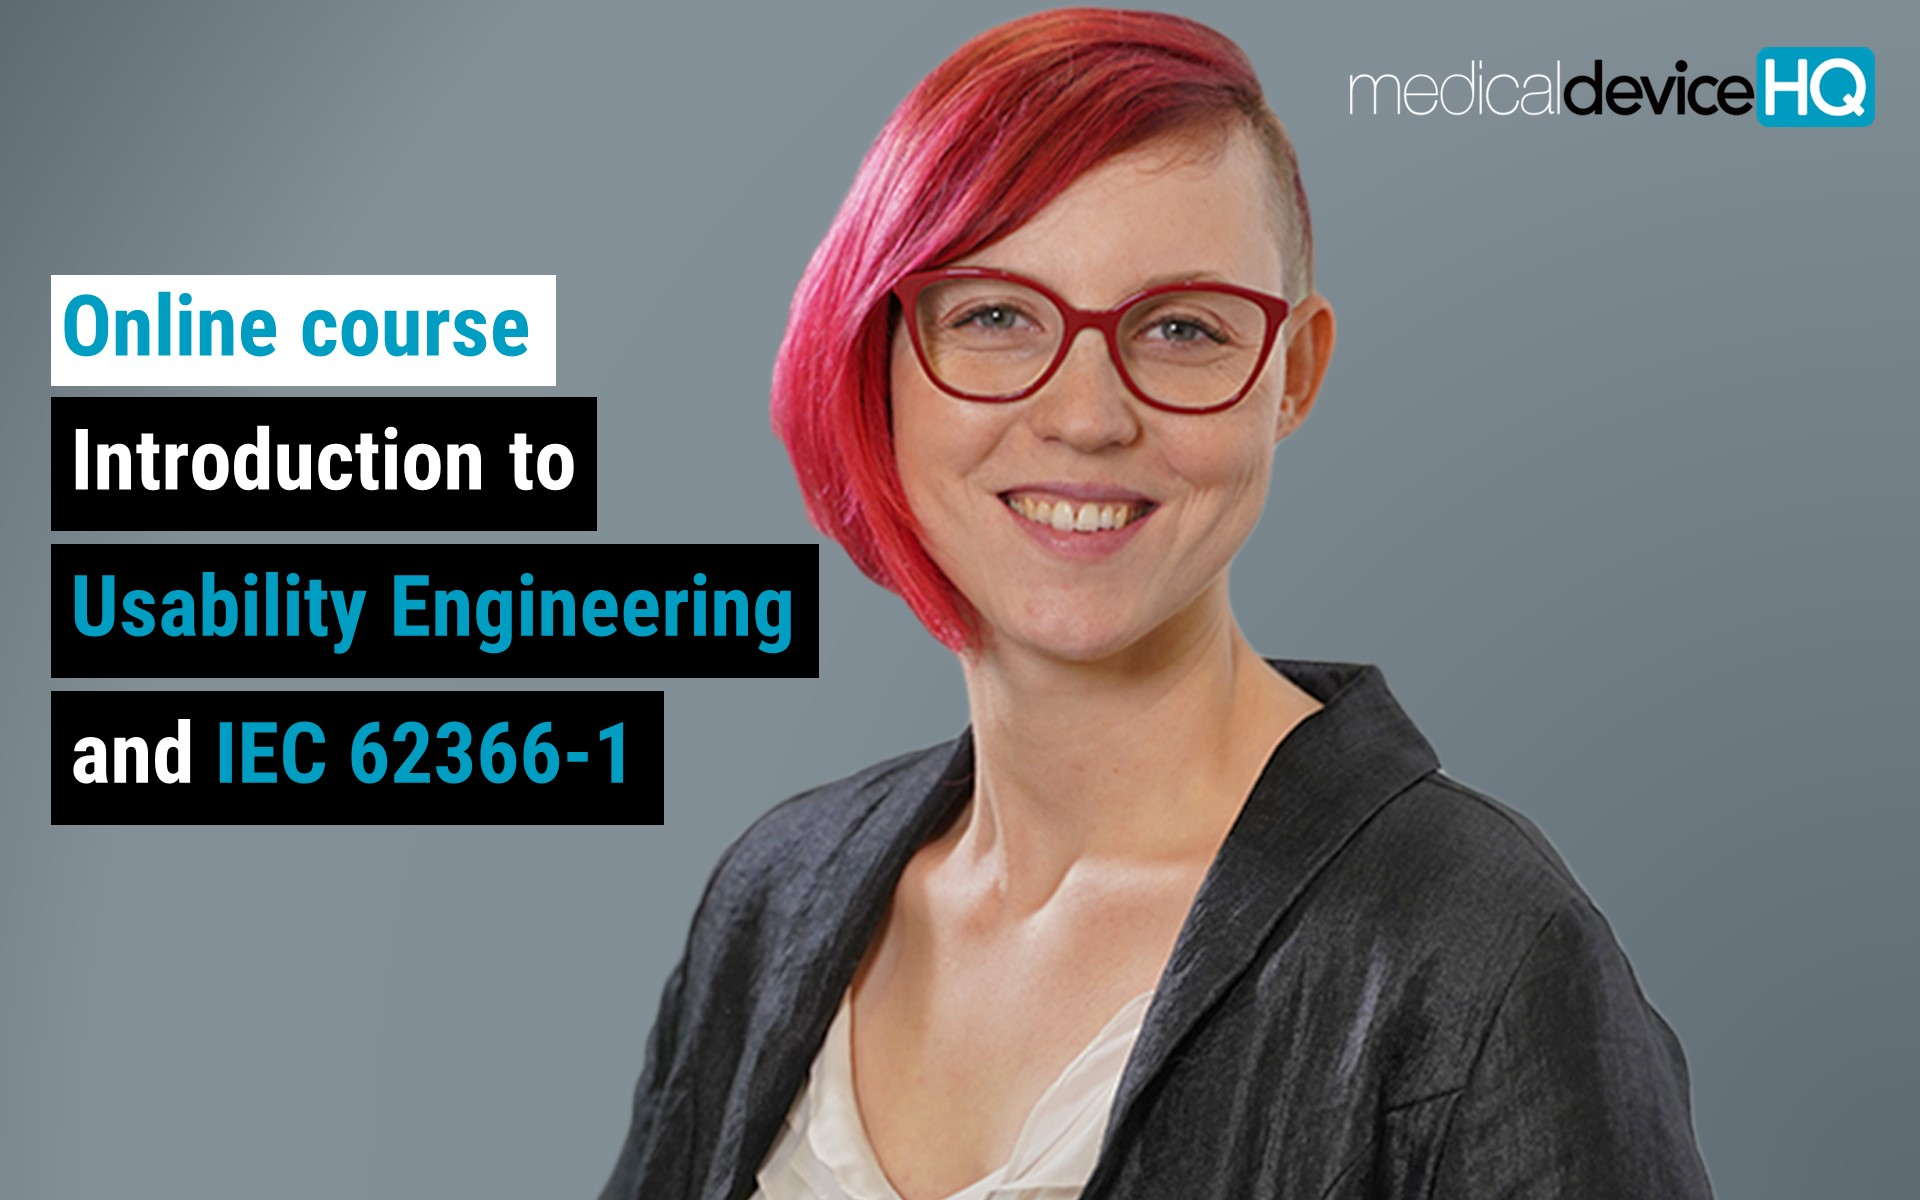 Introduction to Usability Engineering for Medical Devices and IEC 62366-1 online course